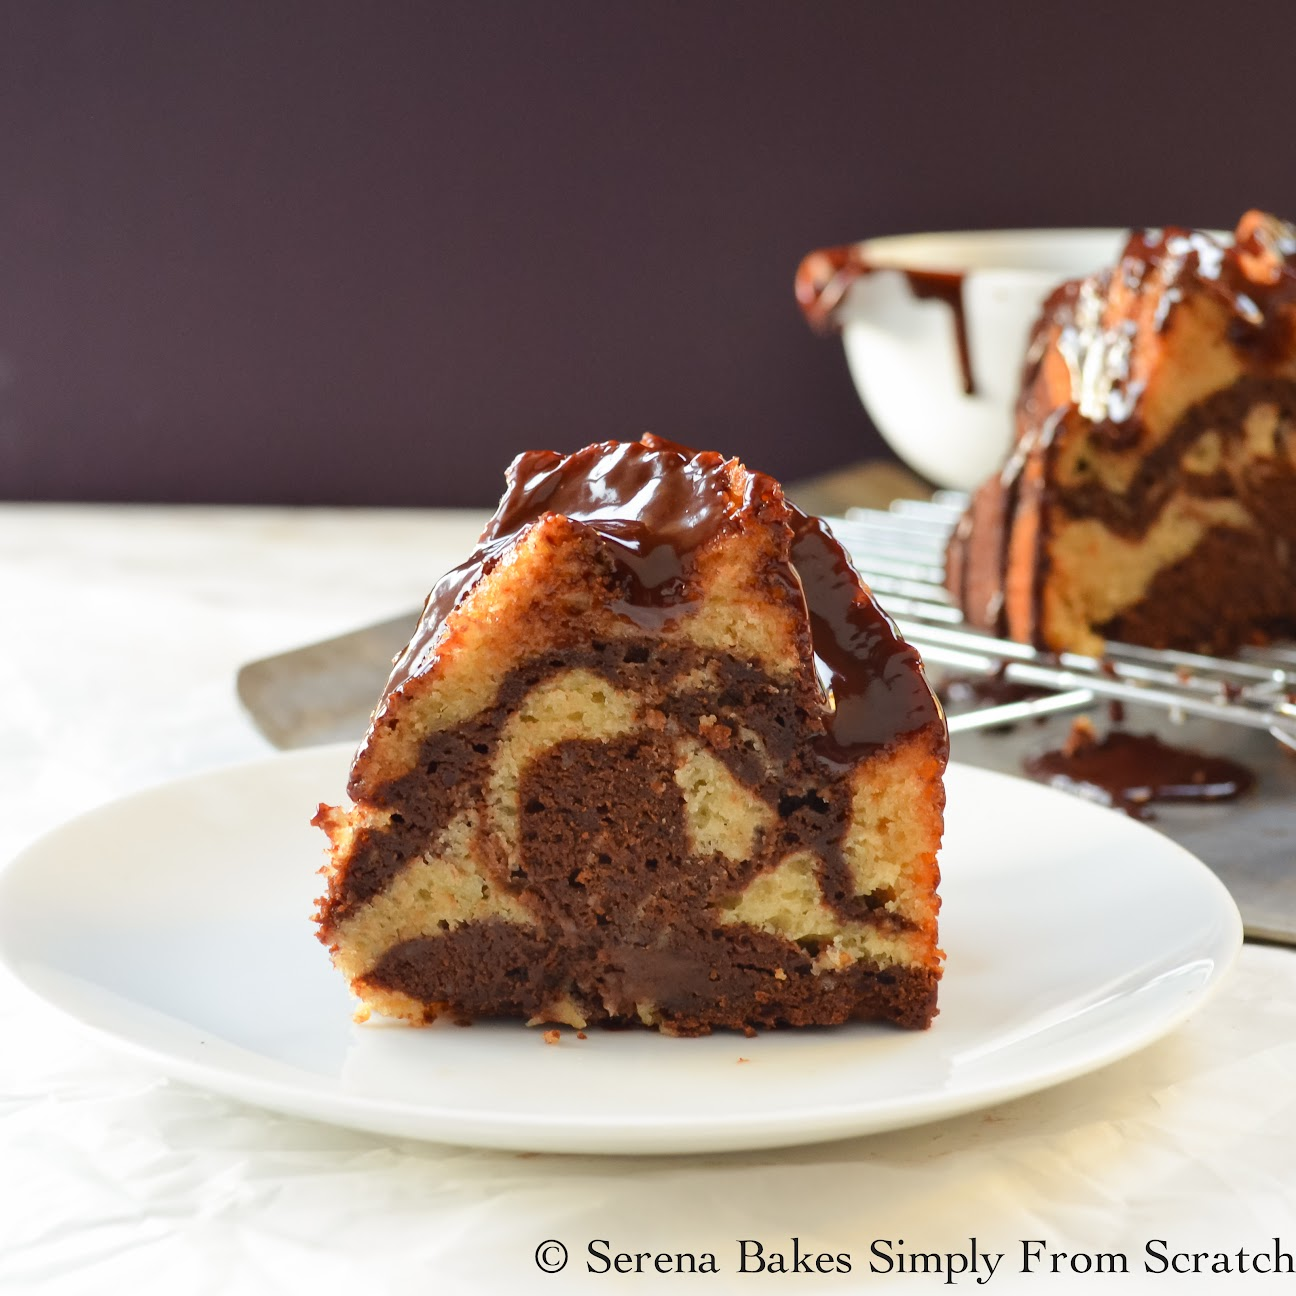 Buttermilk Marble Bundt Cake With Chocolate Glaze